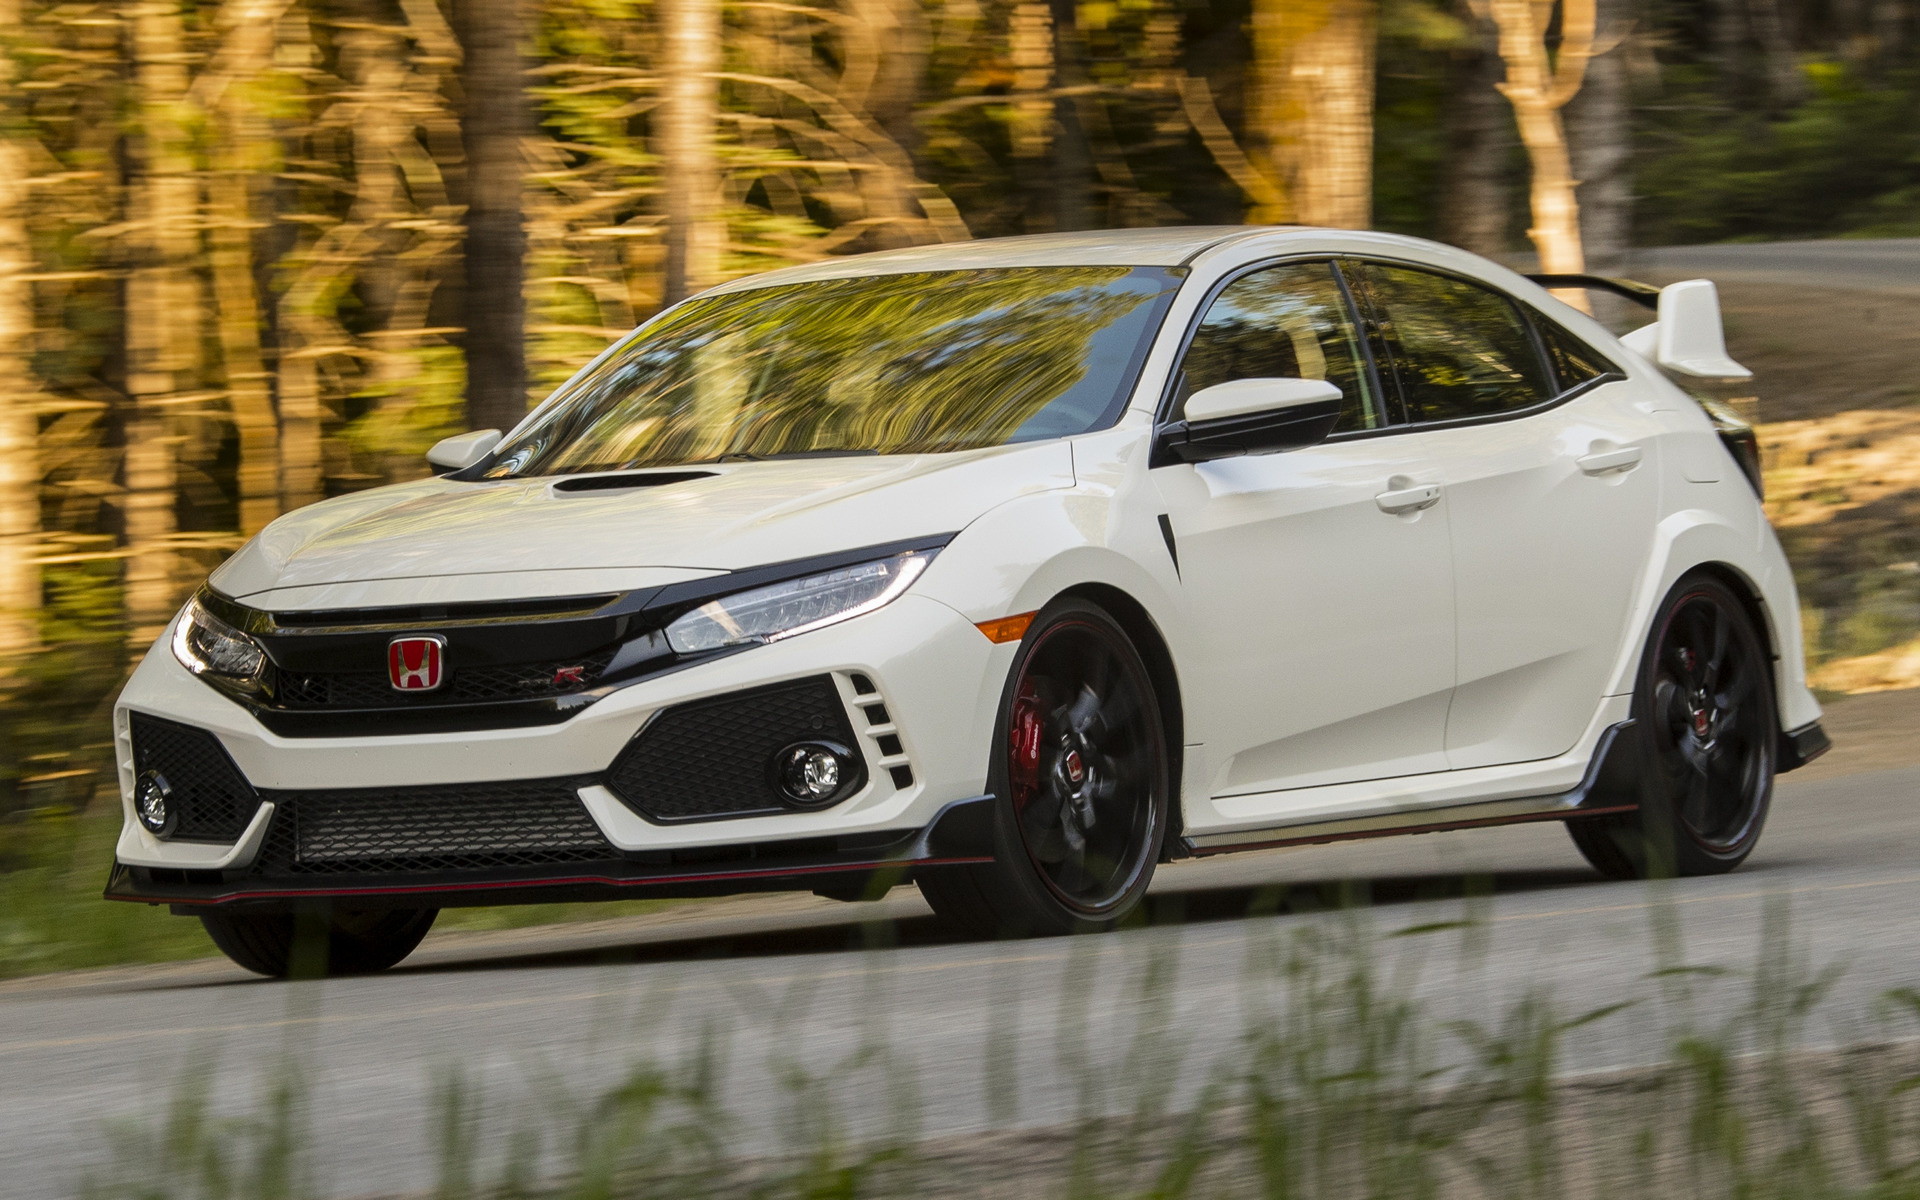 Honda Civic Type R Car Wallpaper